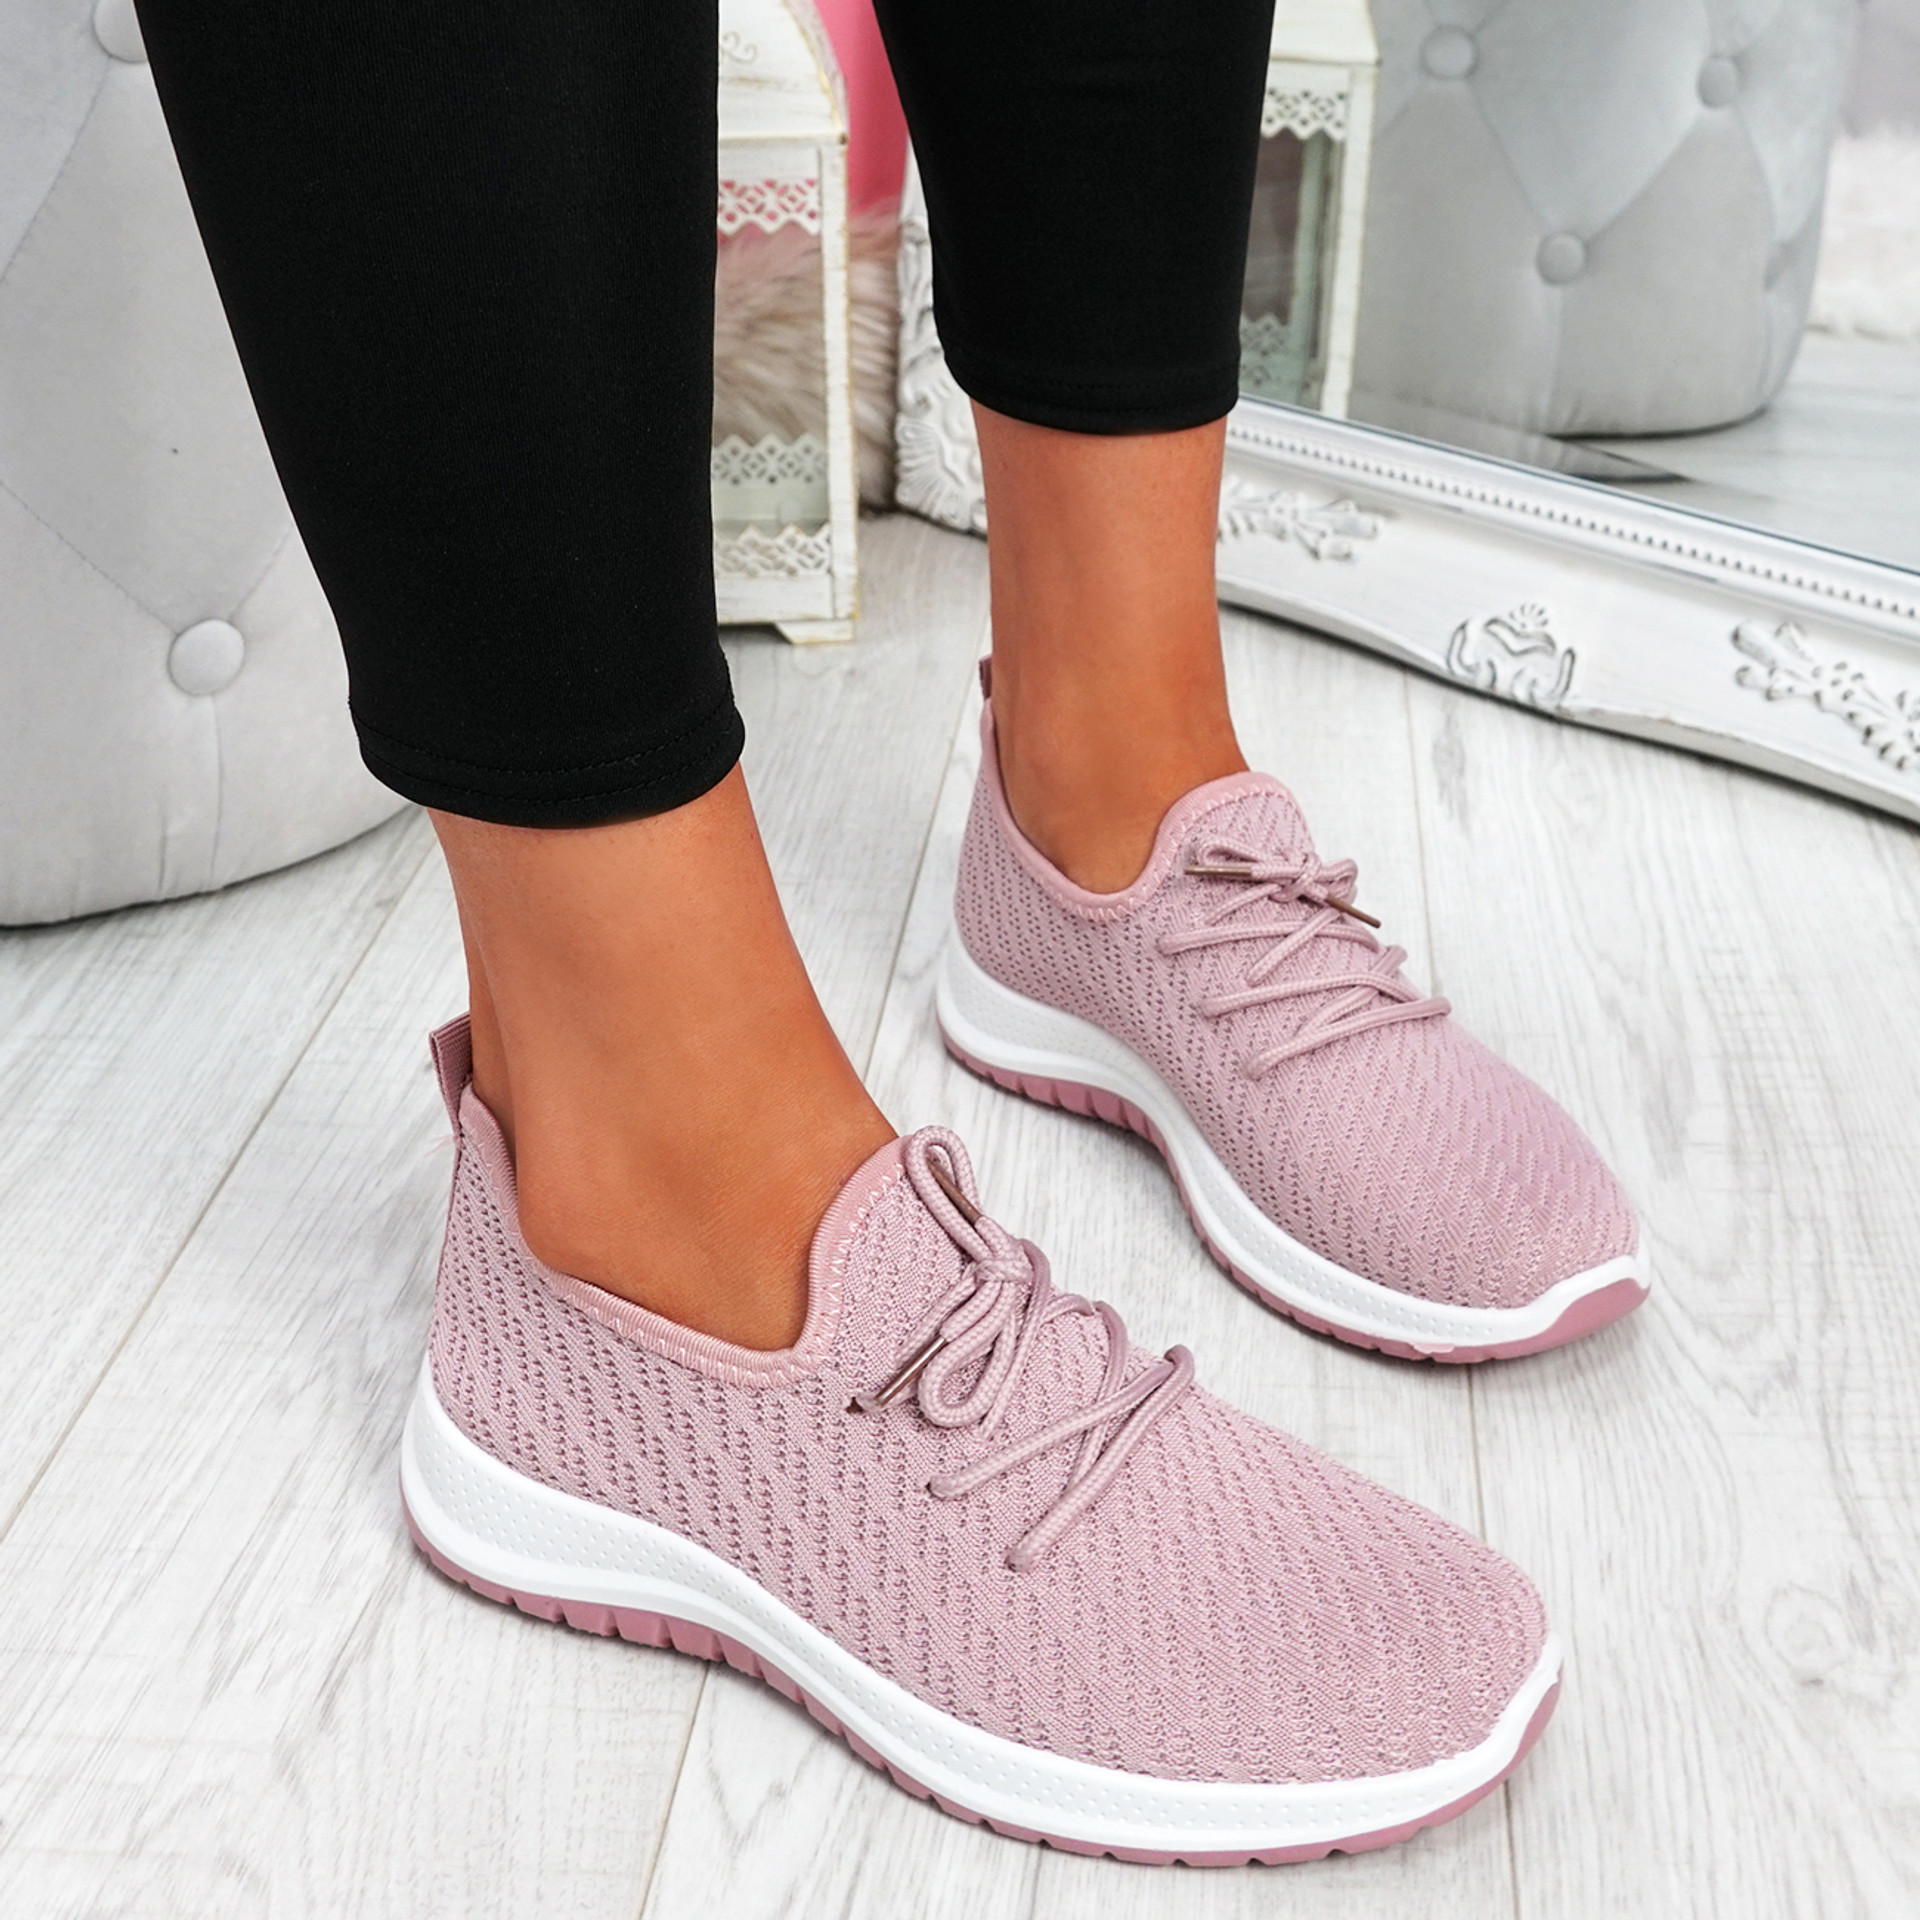 Ligy Pink Knit Lace Up Sneakers